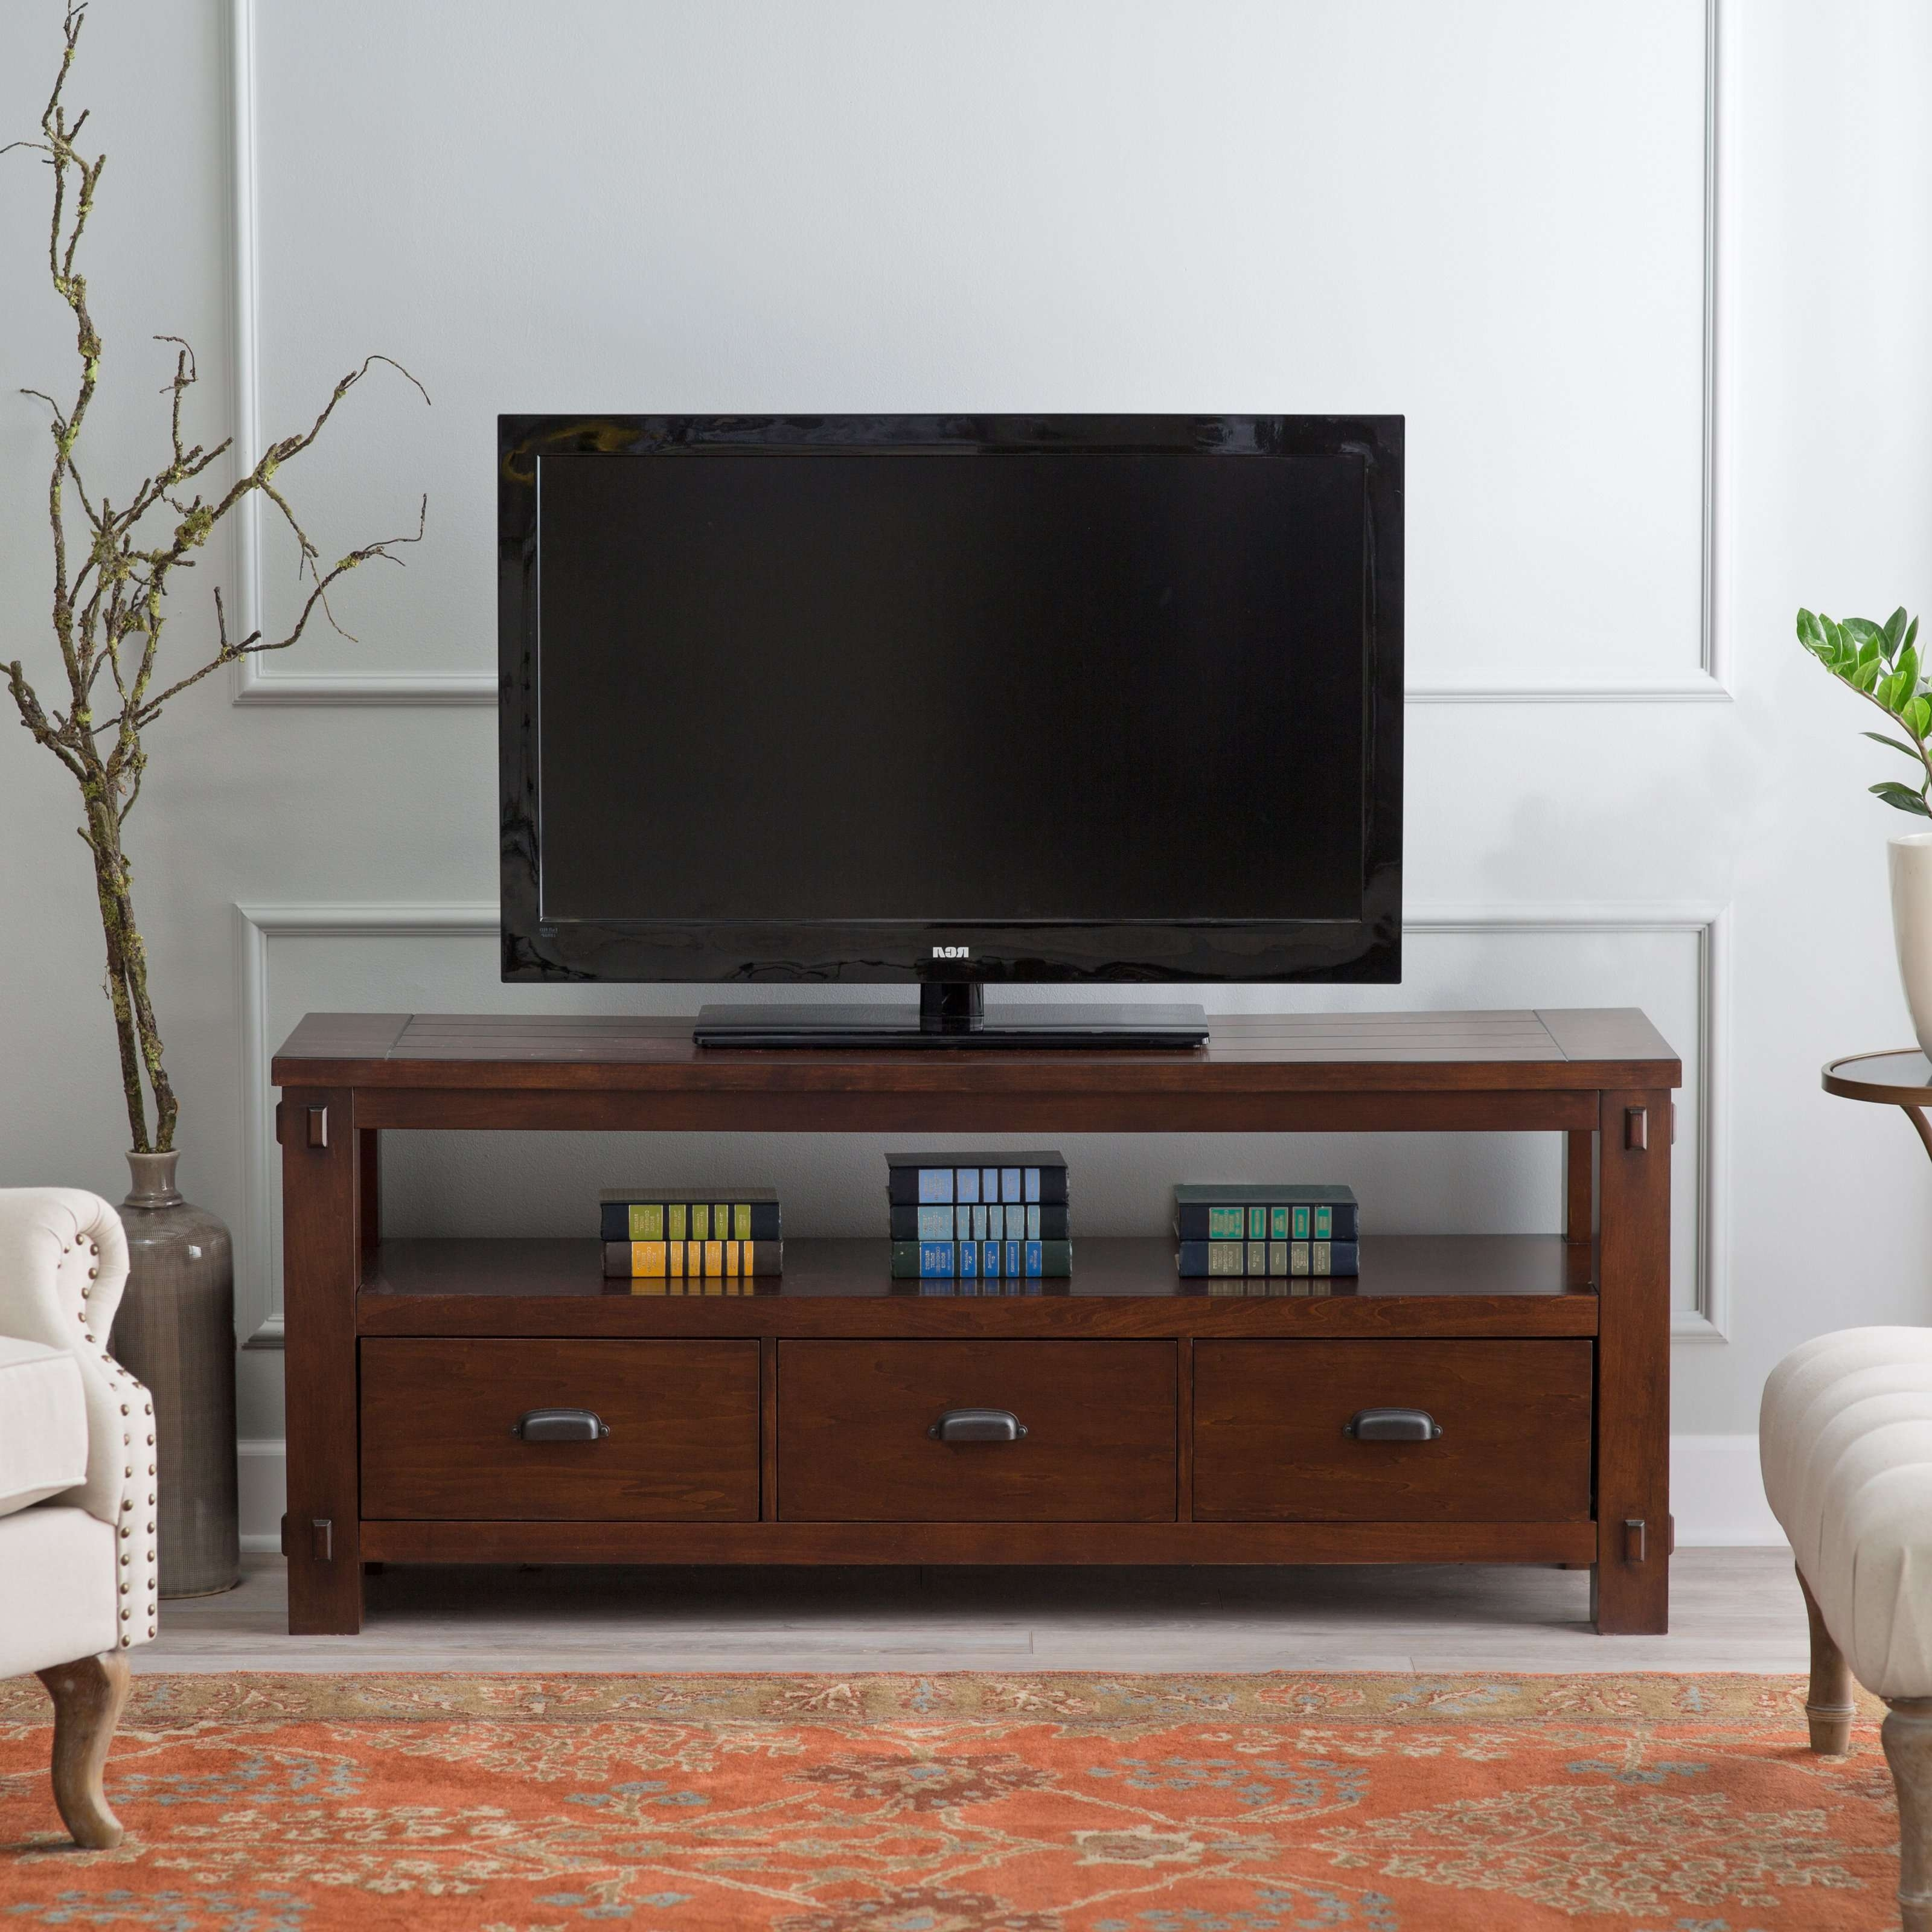 Corner Tv Stand For Inch Flat Screen Fascinating On Home Decors Regarding 40 Inch Corner Tv Stands (View 7 of 15)